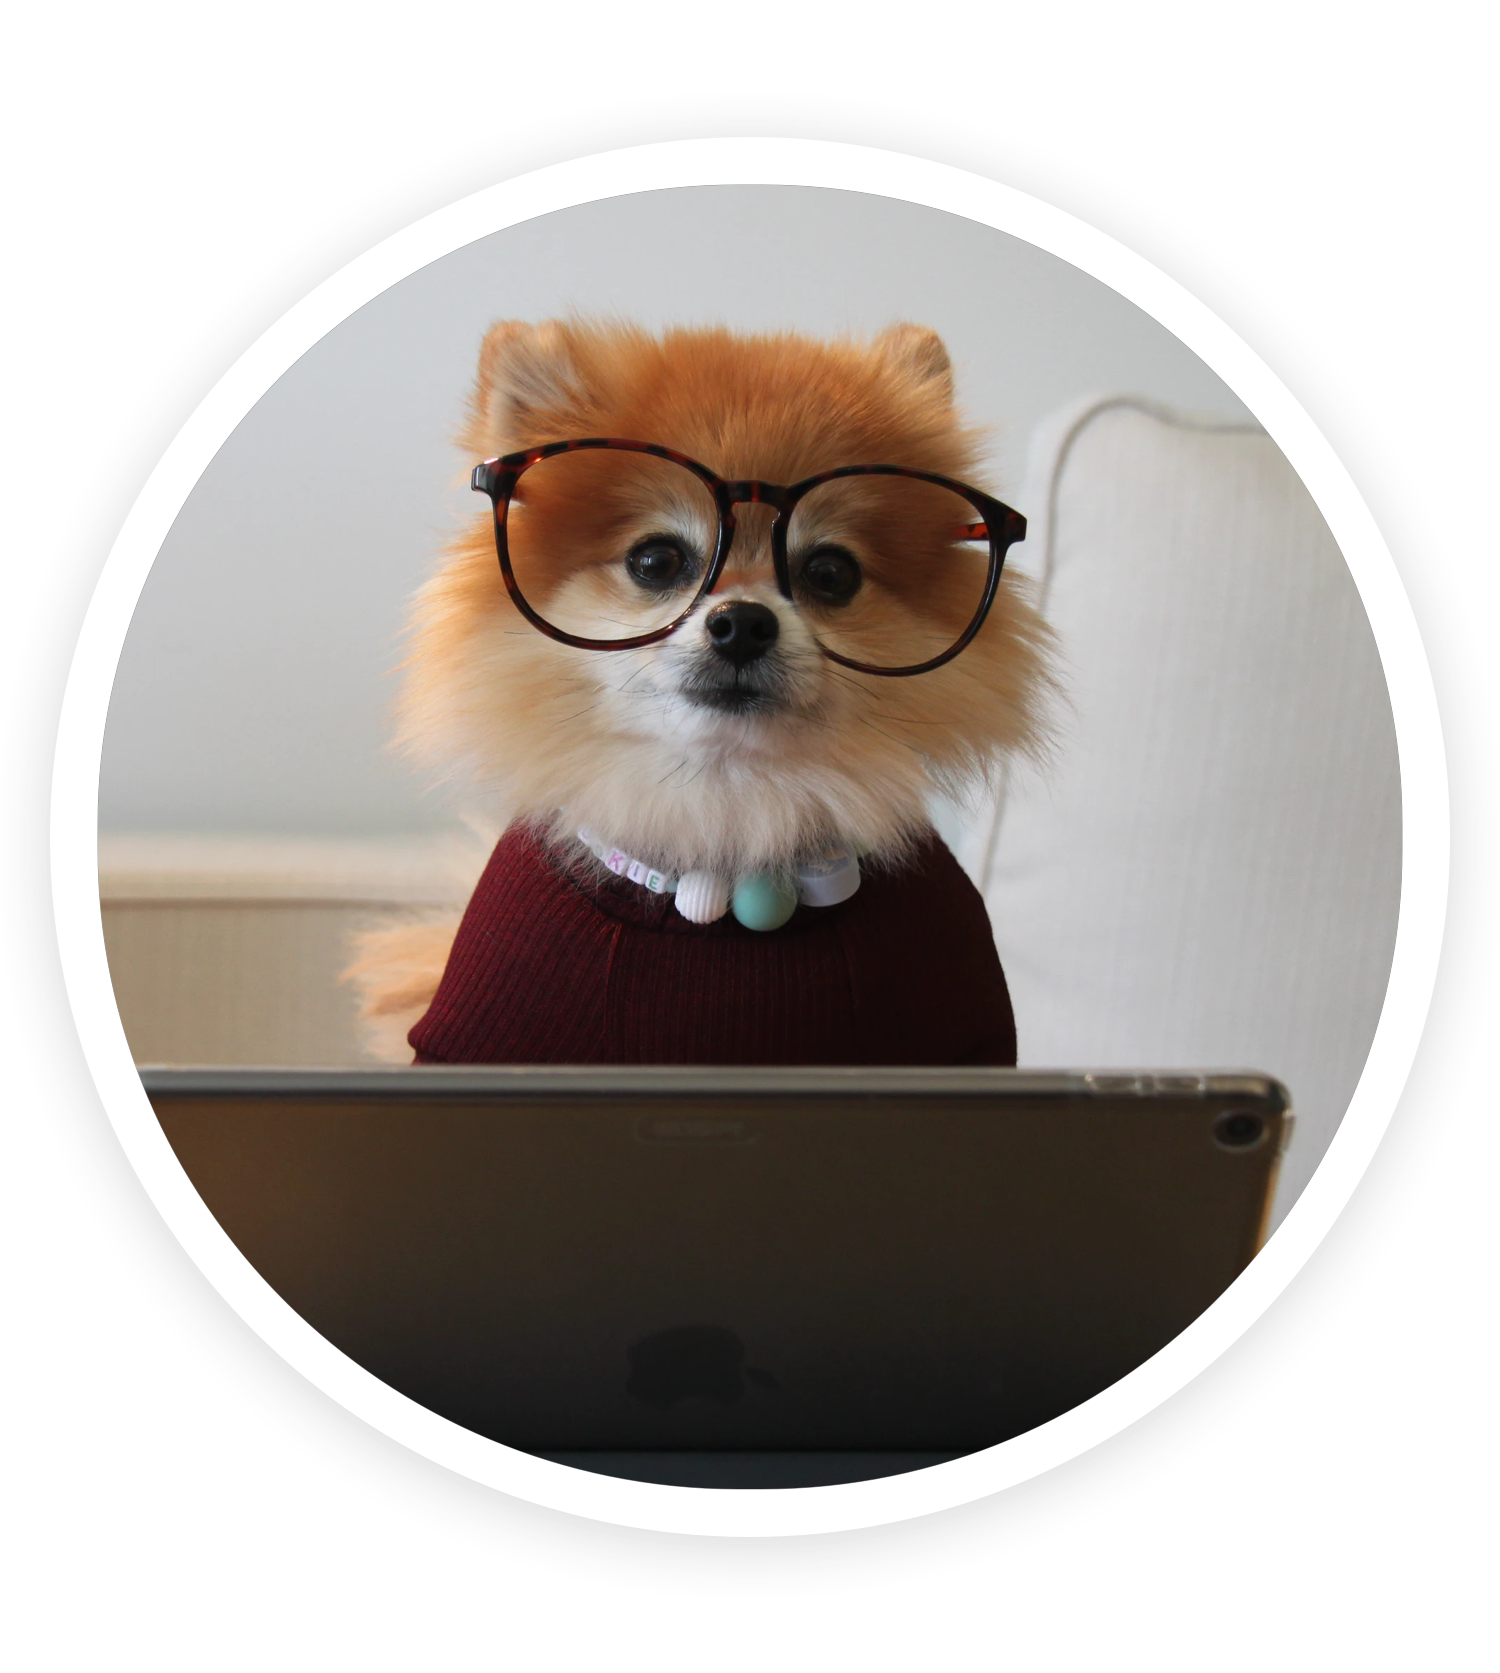 A friendly dog masquerading as a customer service professional